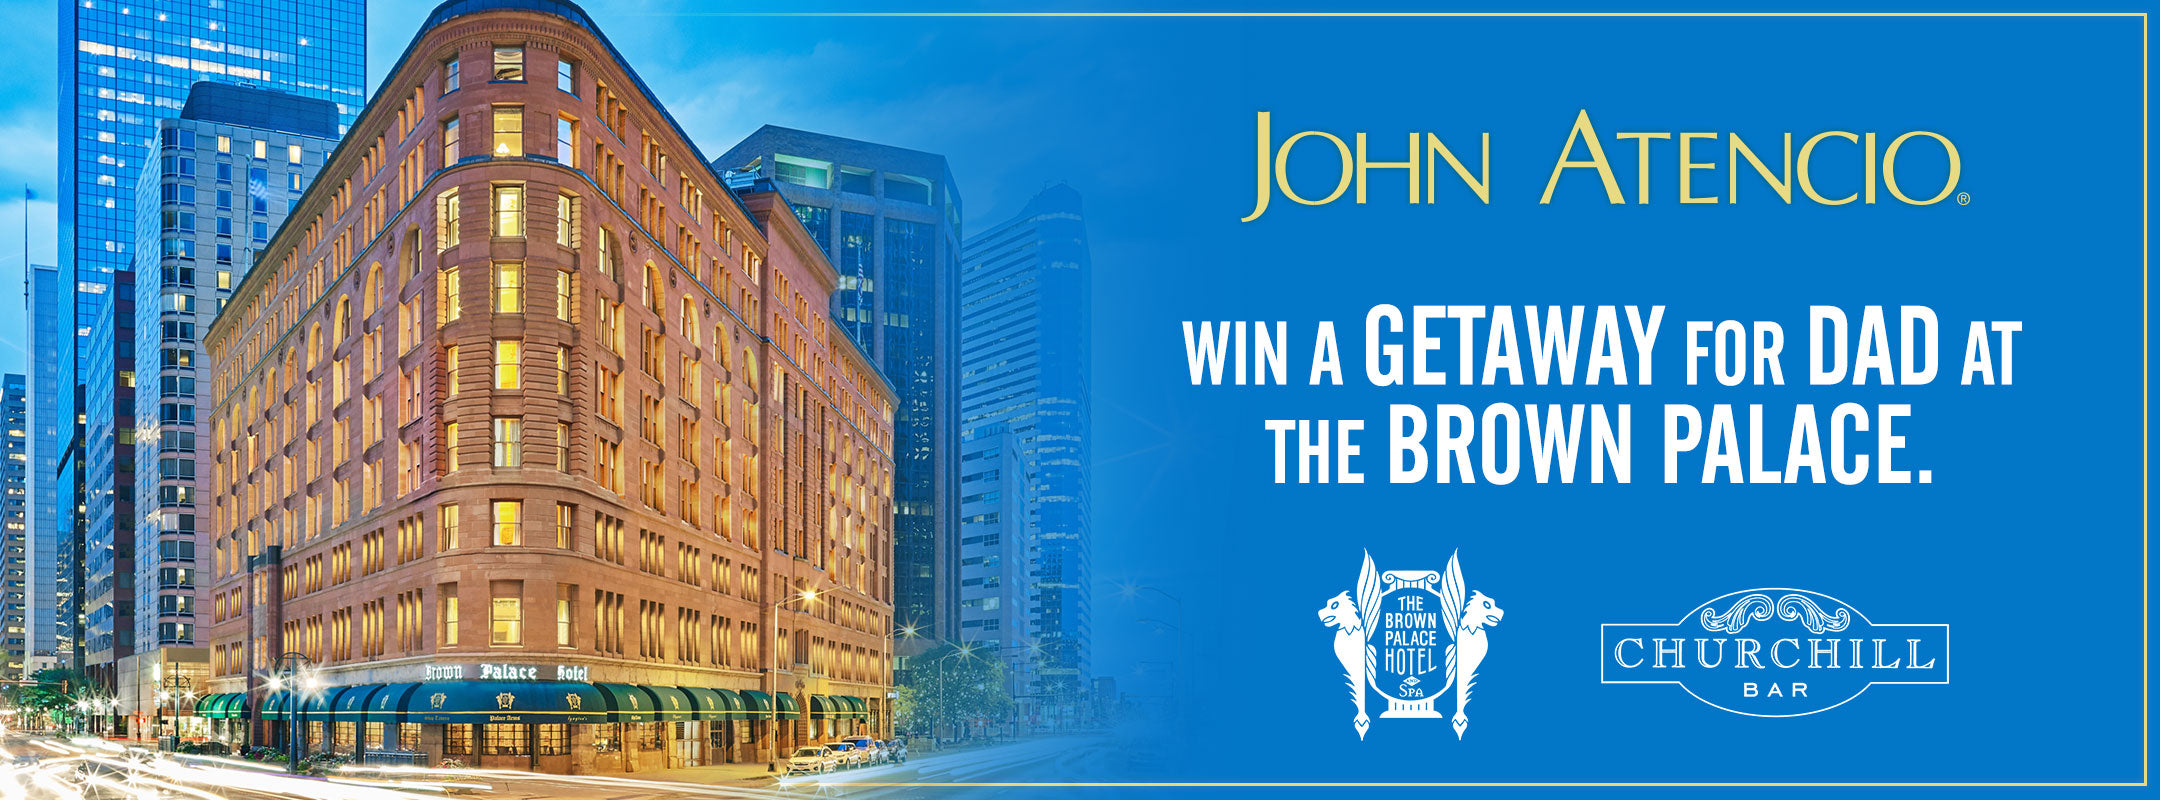 Win a Getaway for Dad